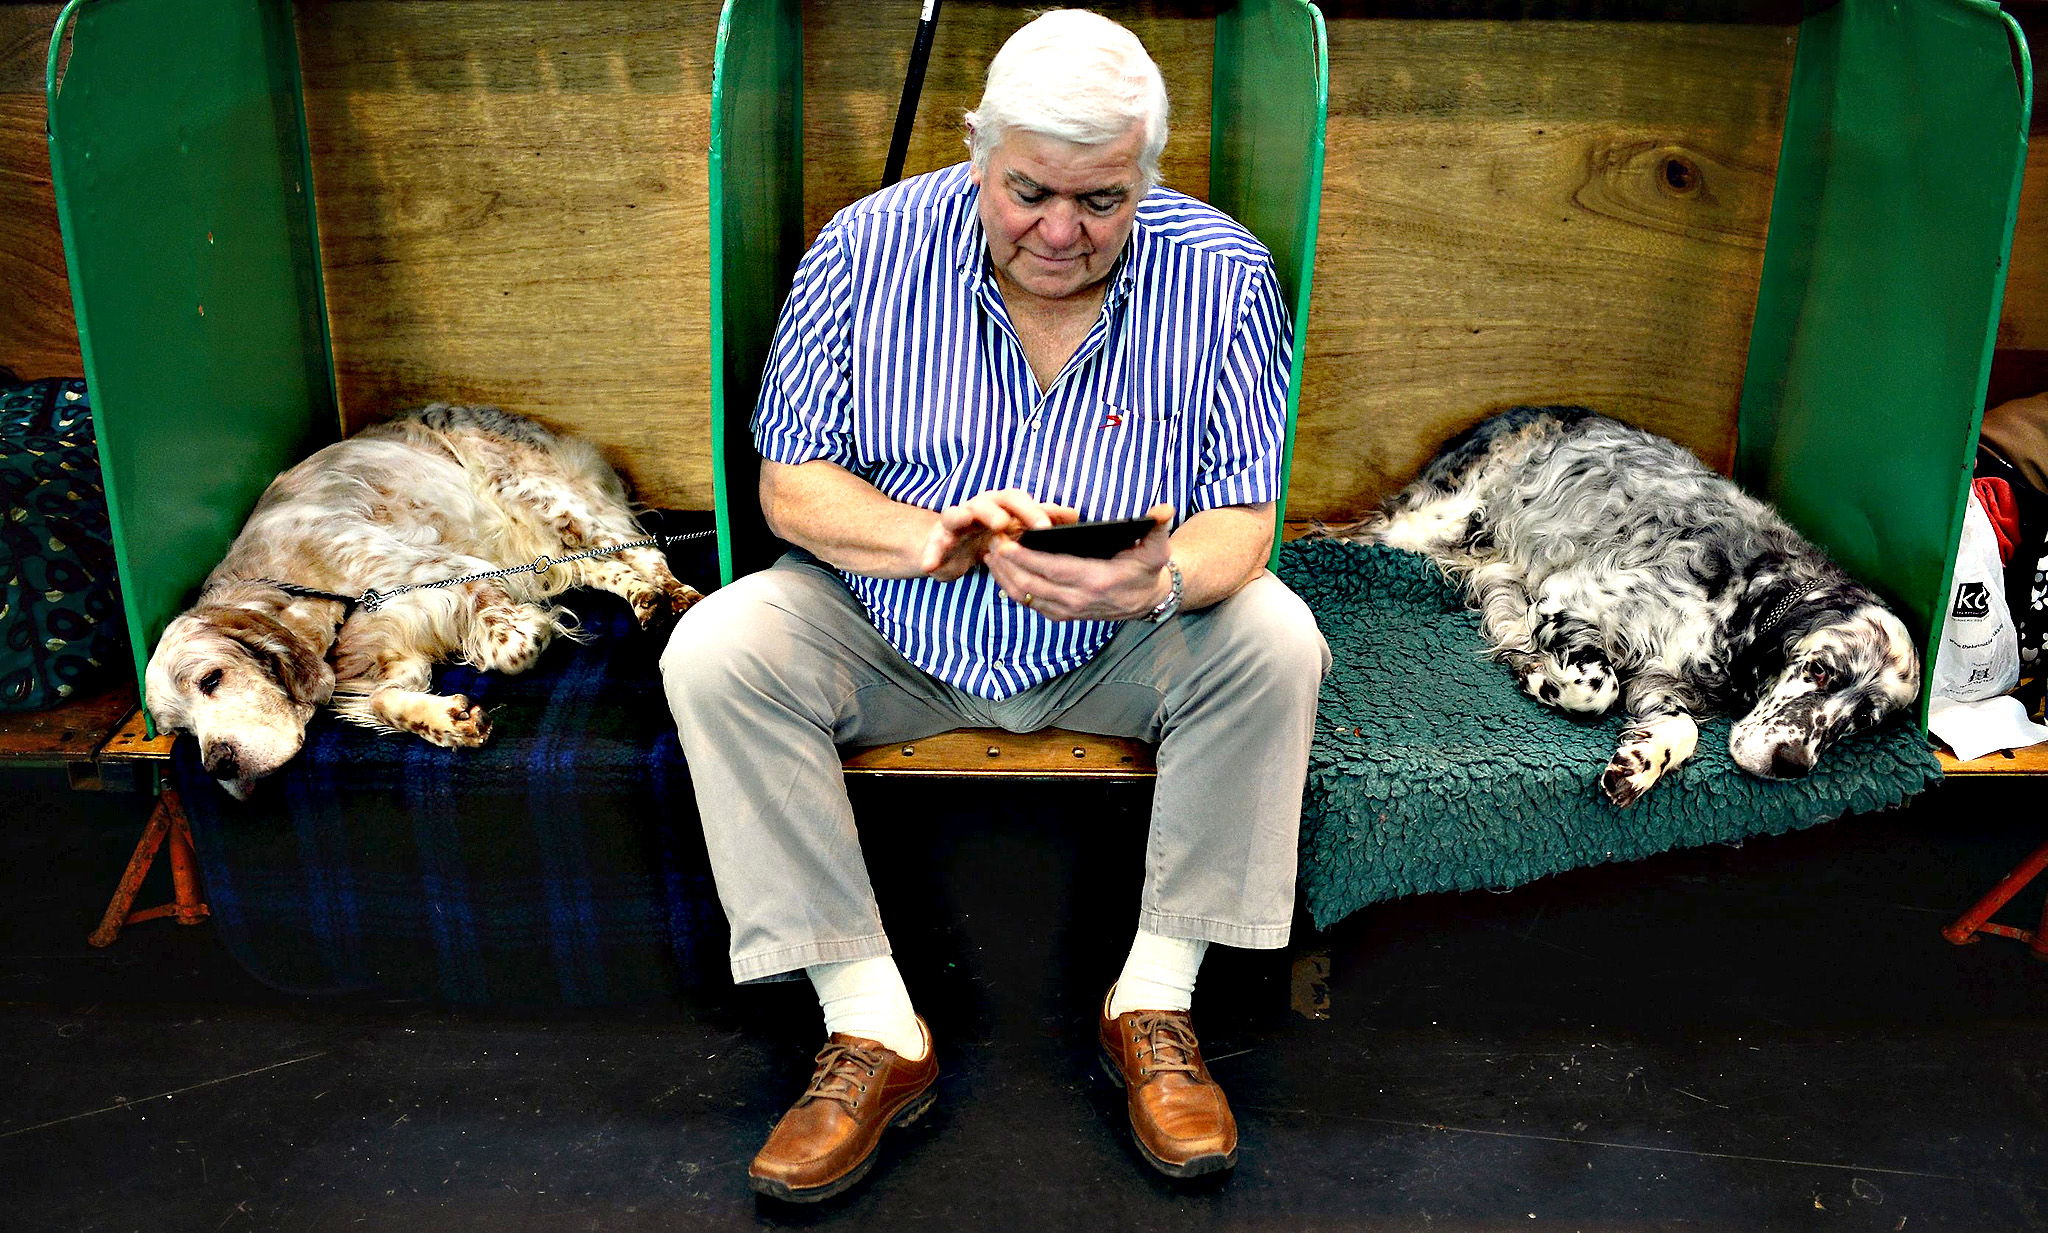 A man with his English Setters at the annual Crufts Dog Show at the NEC Arena in Birmingham, Britain, 05 March 2015. The world's largest dog show will be held from 05 to 08 March. The main competition is for the Best in Show award, the most coveted title sought by dog owners.